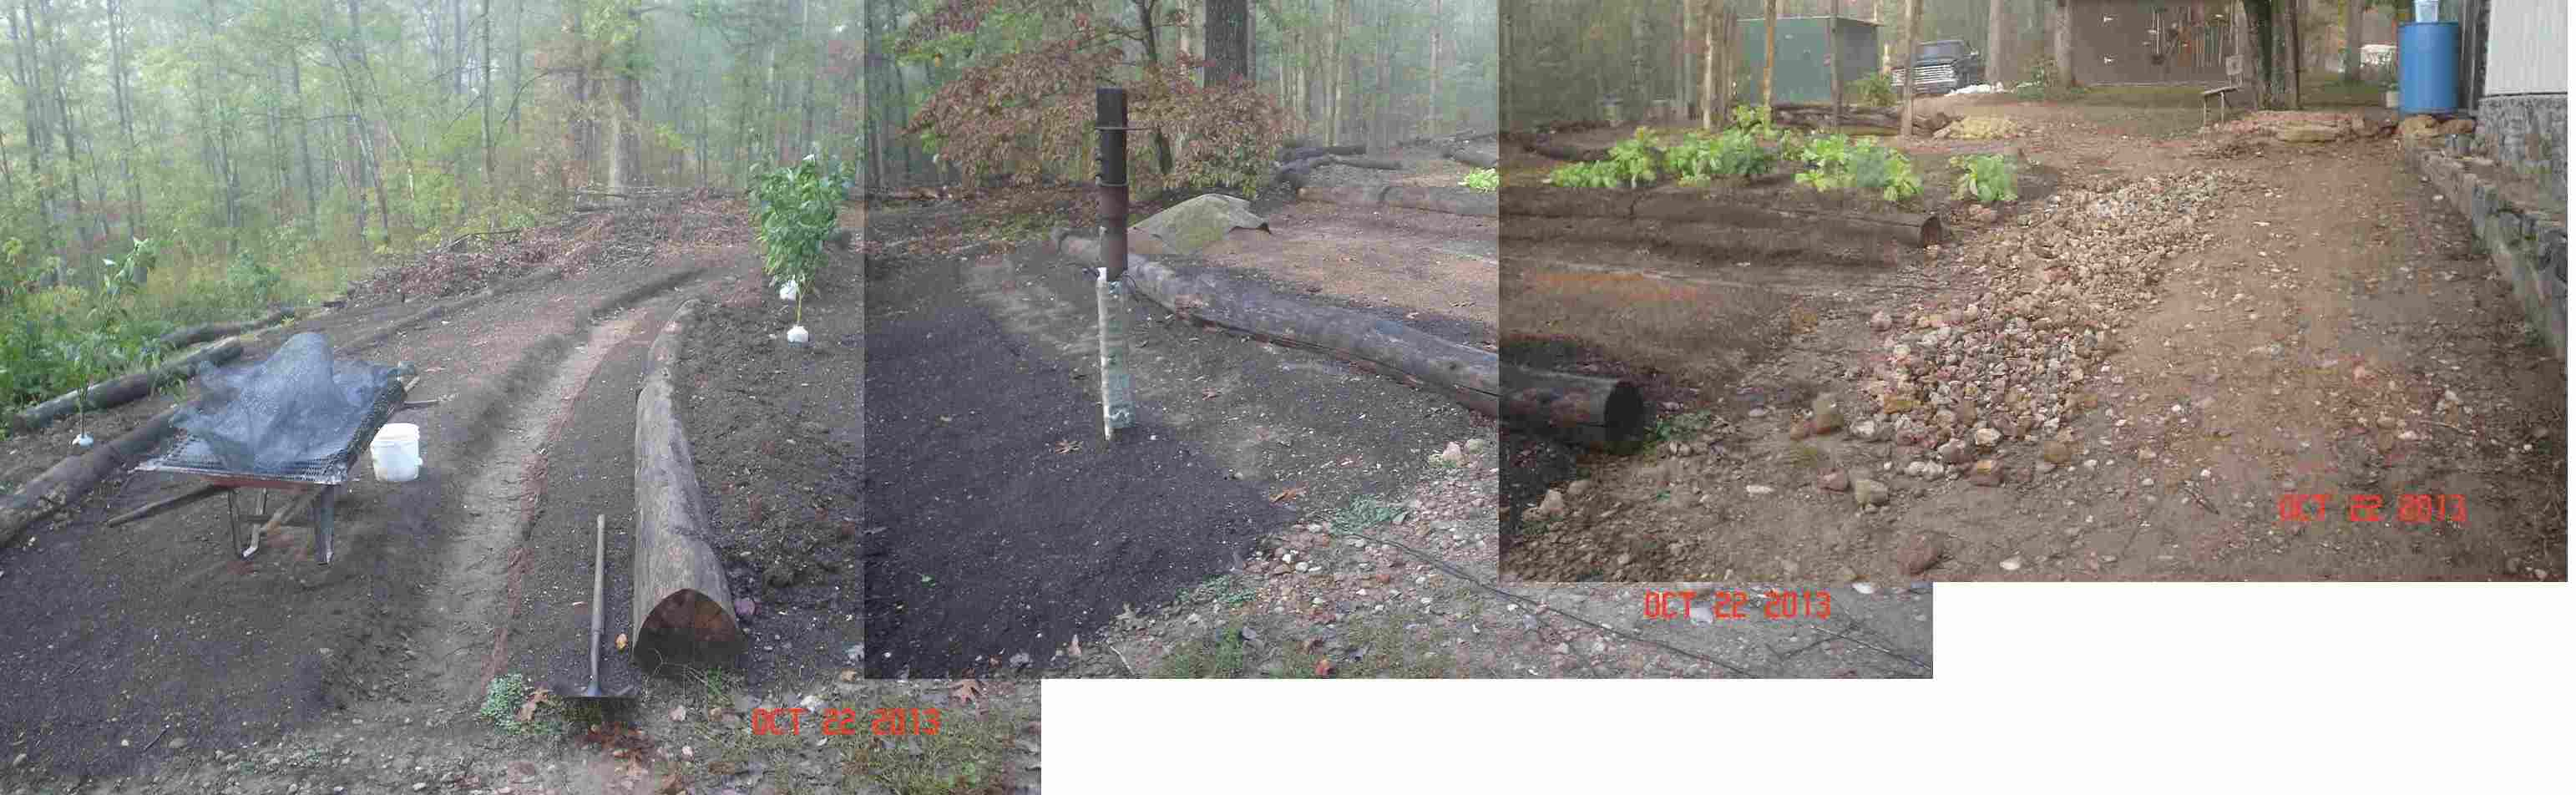 Dale S Roof Runoff French Drain Sunken Hugelkultur Bed